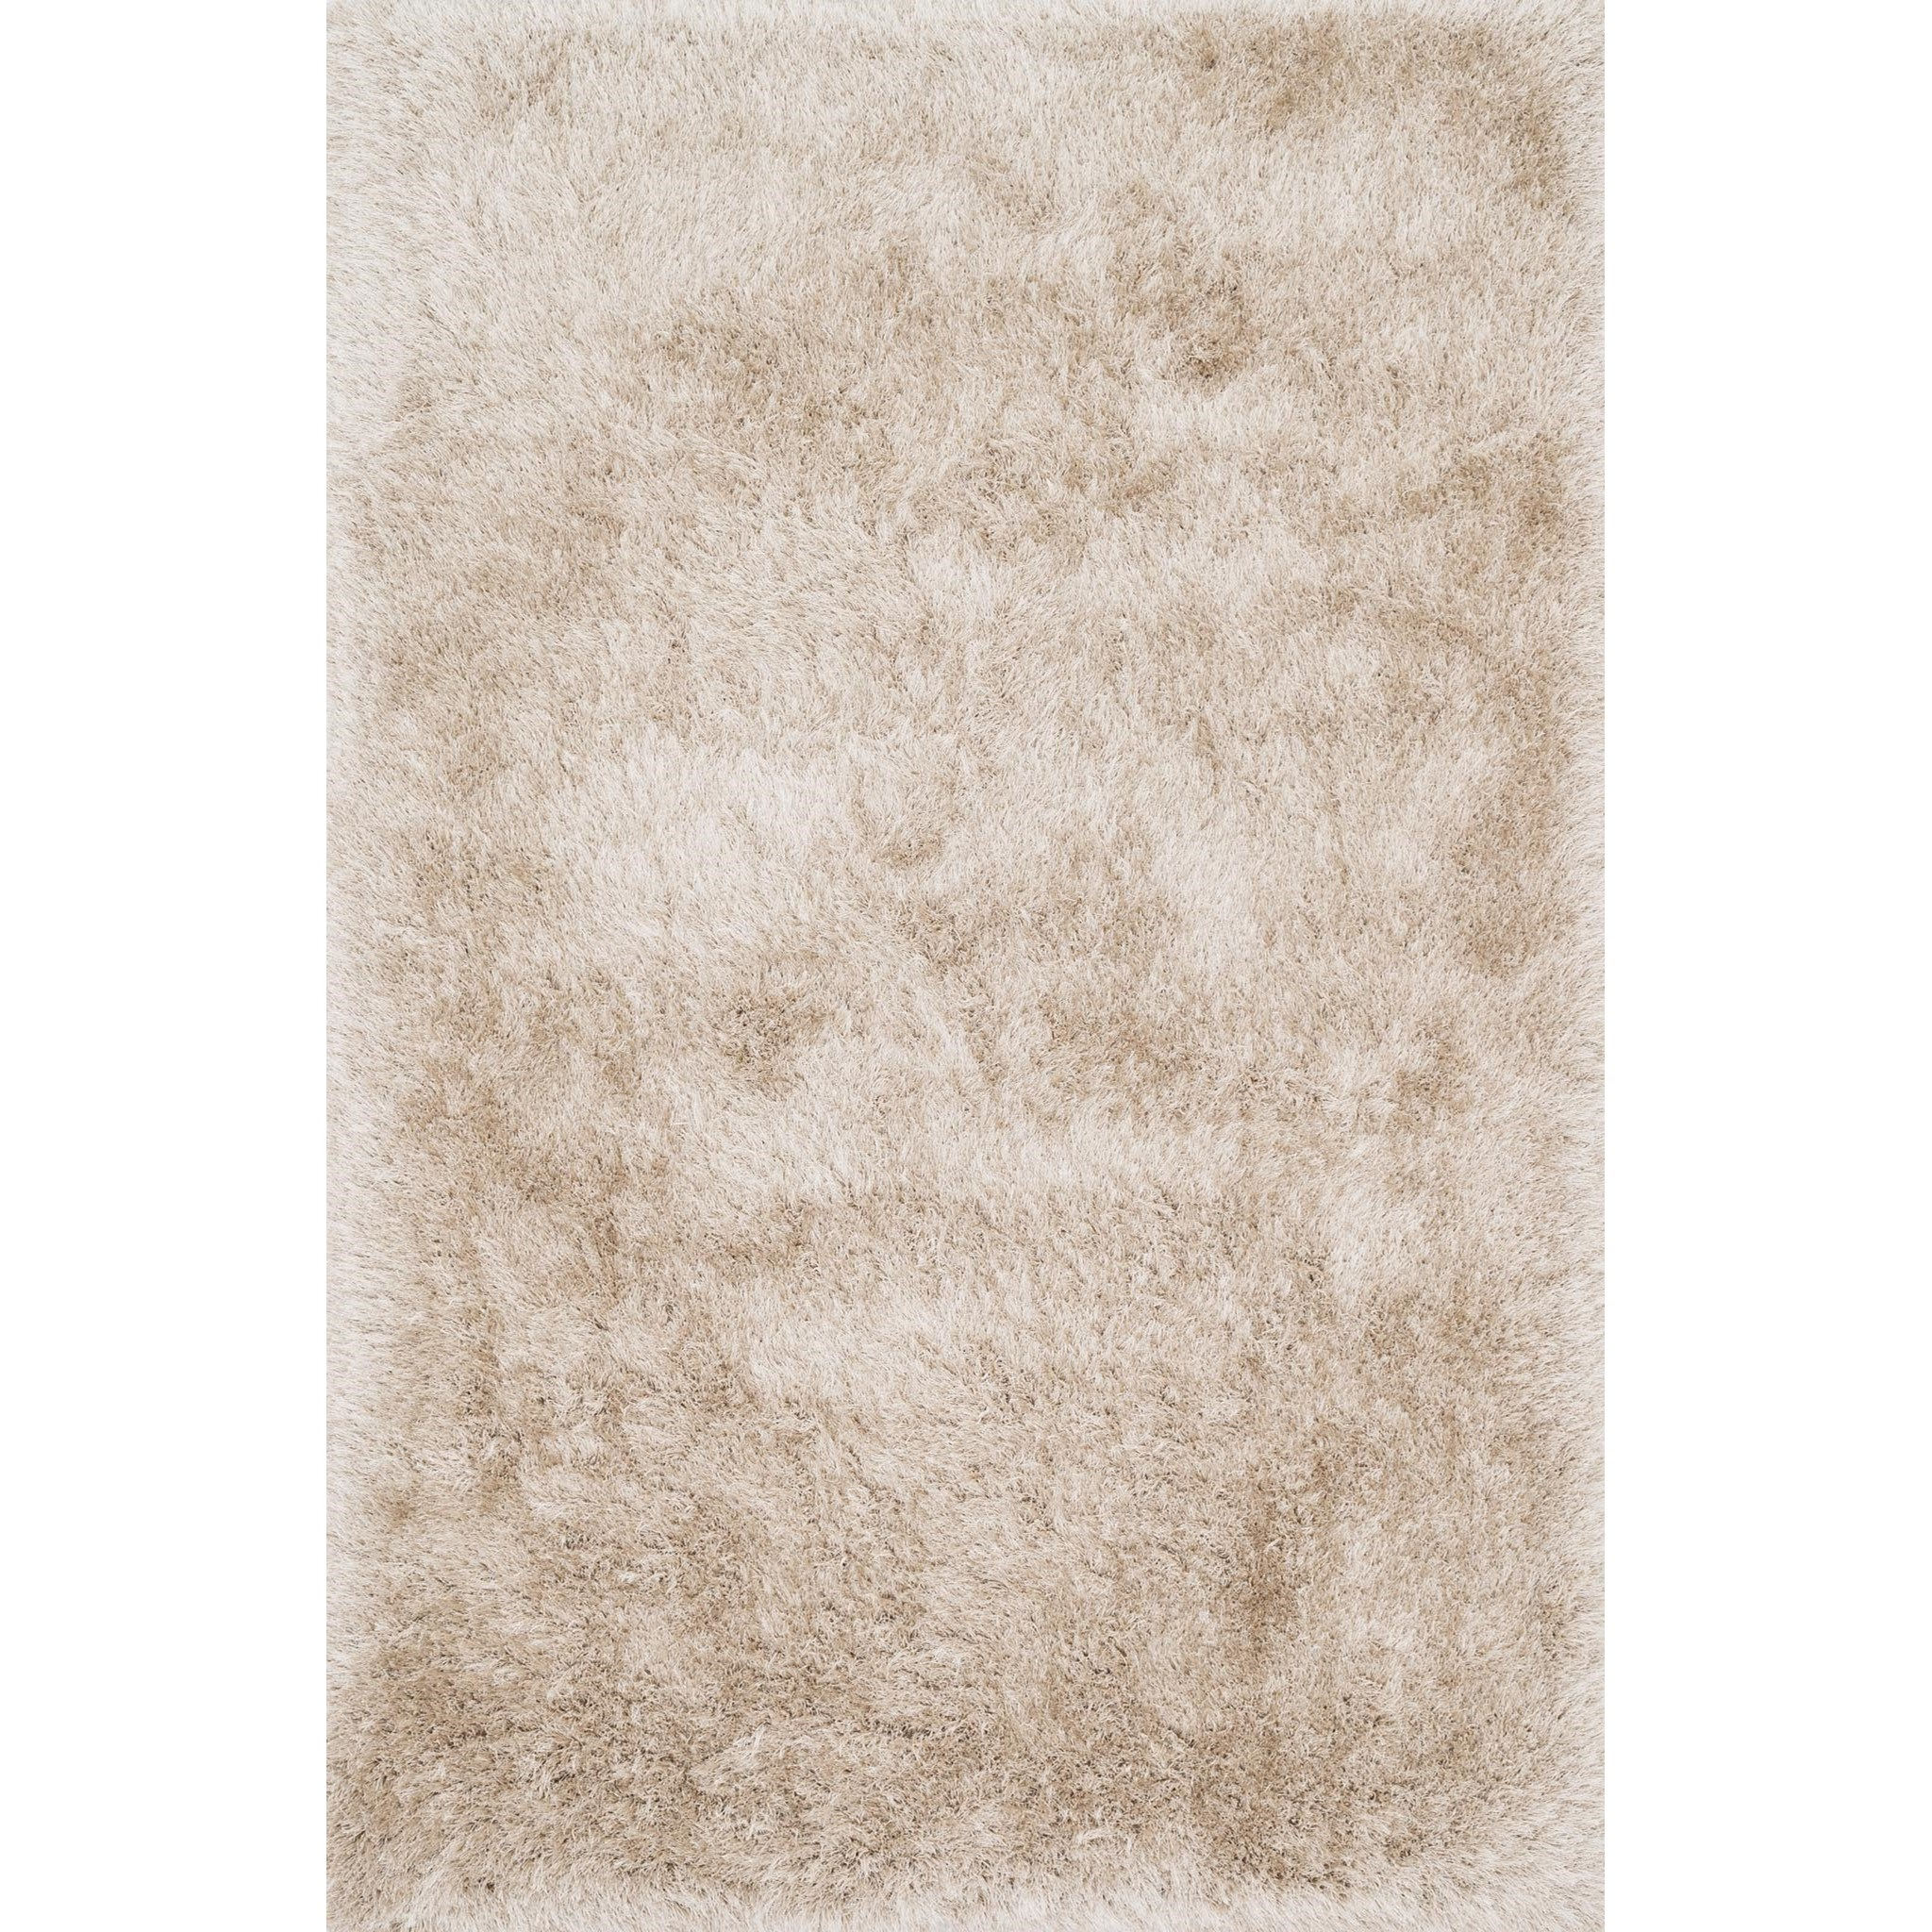 "Orian Shag 3'-6"" x 5'-6"" Area Rug by Loloi Rugs at Belfort Furniture"